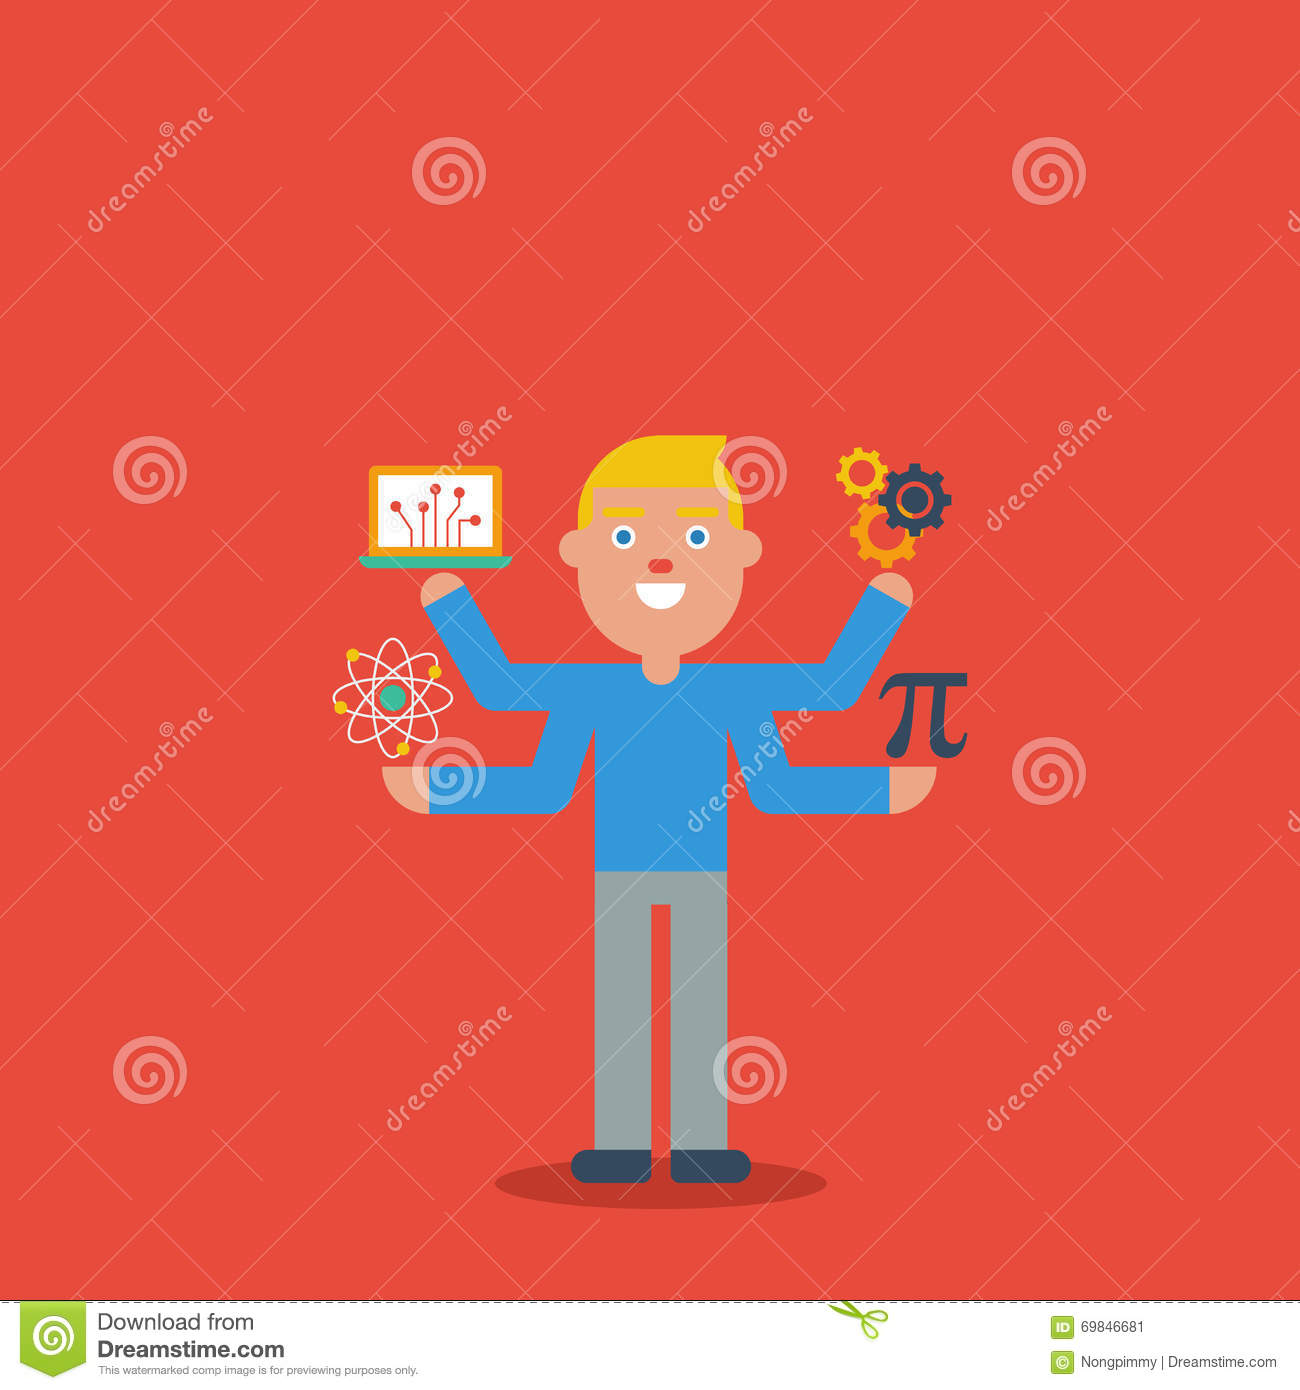 Science Technology Engineering Math: STEM Education Character Concept Stock Vector